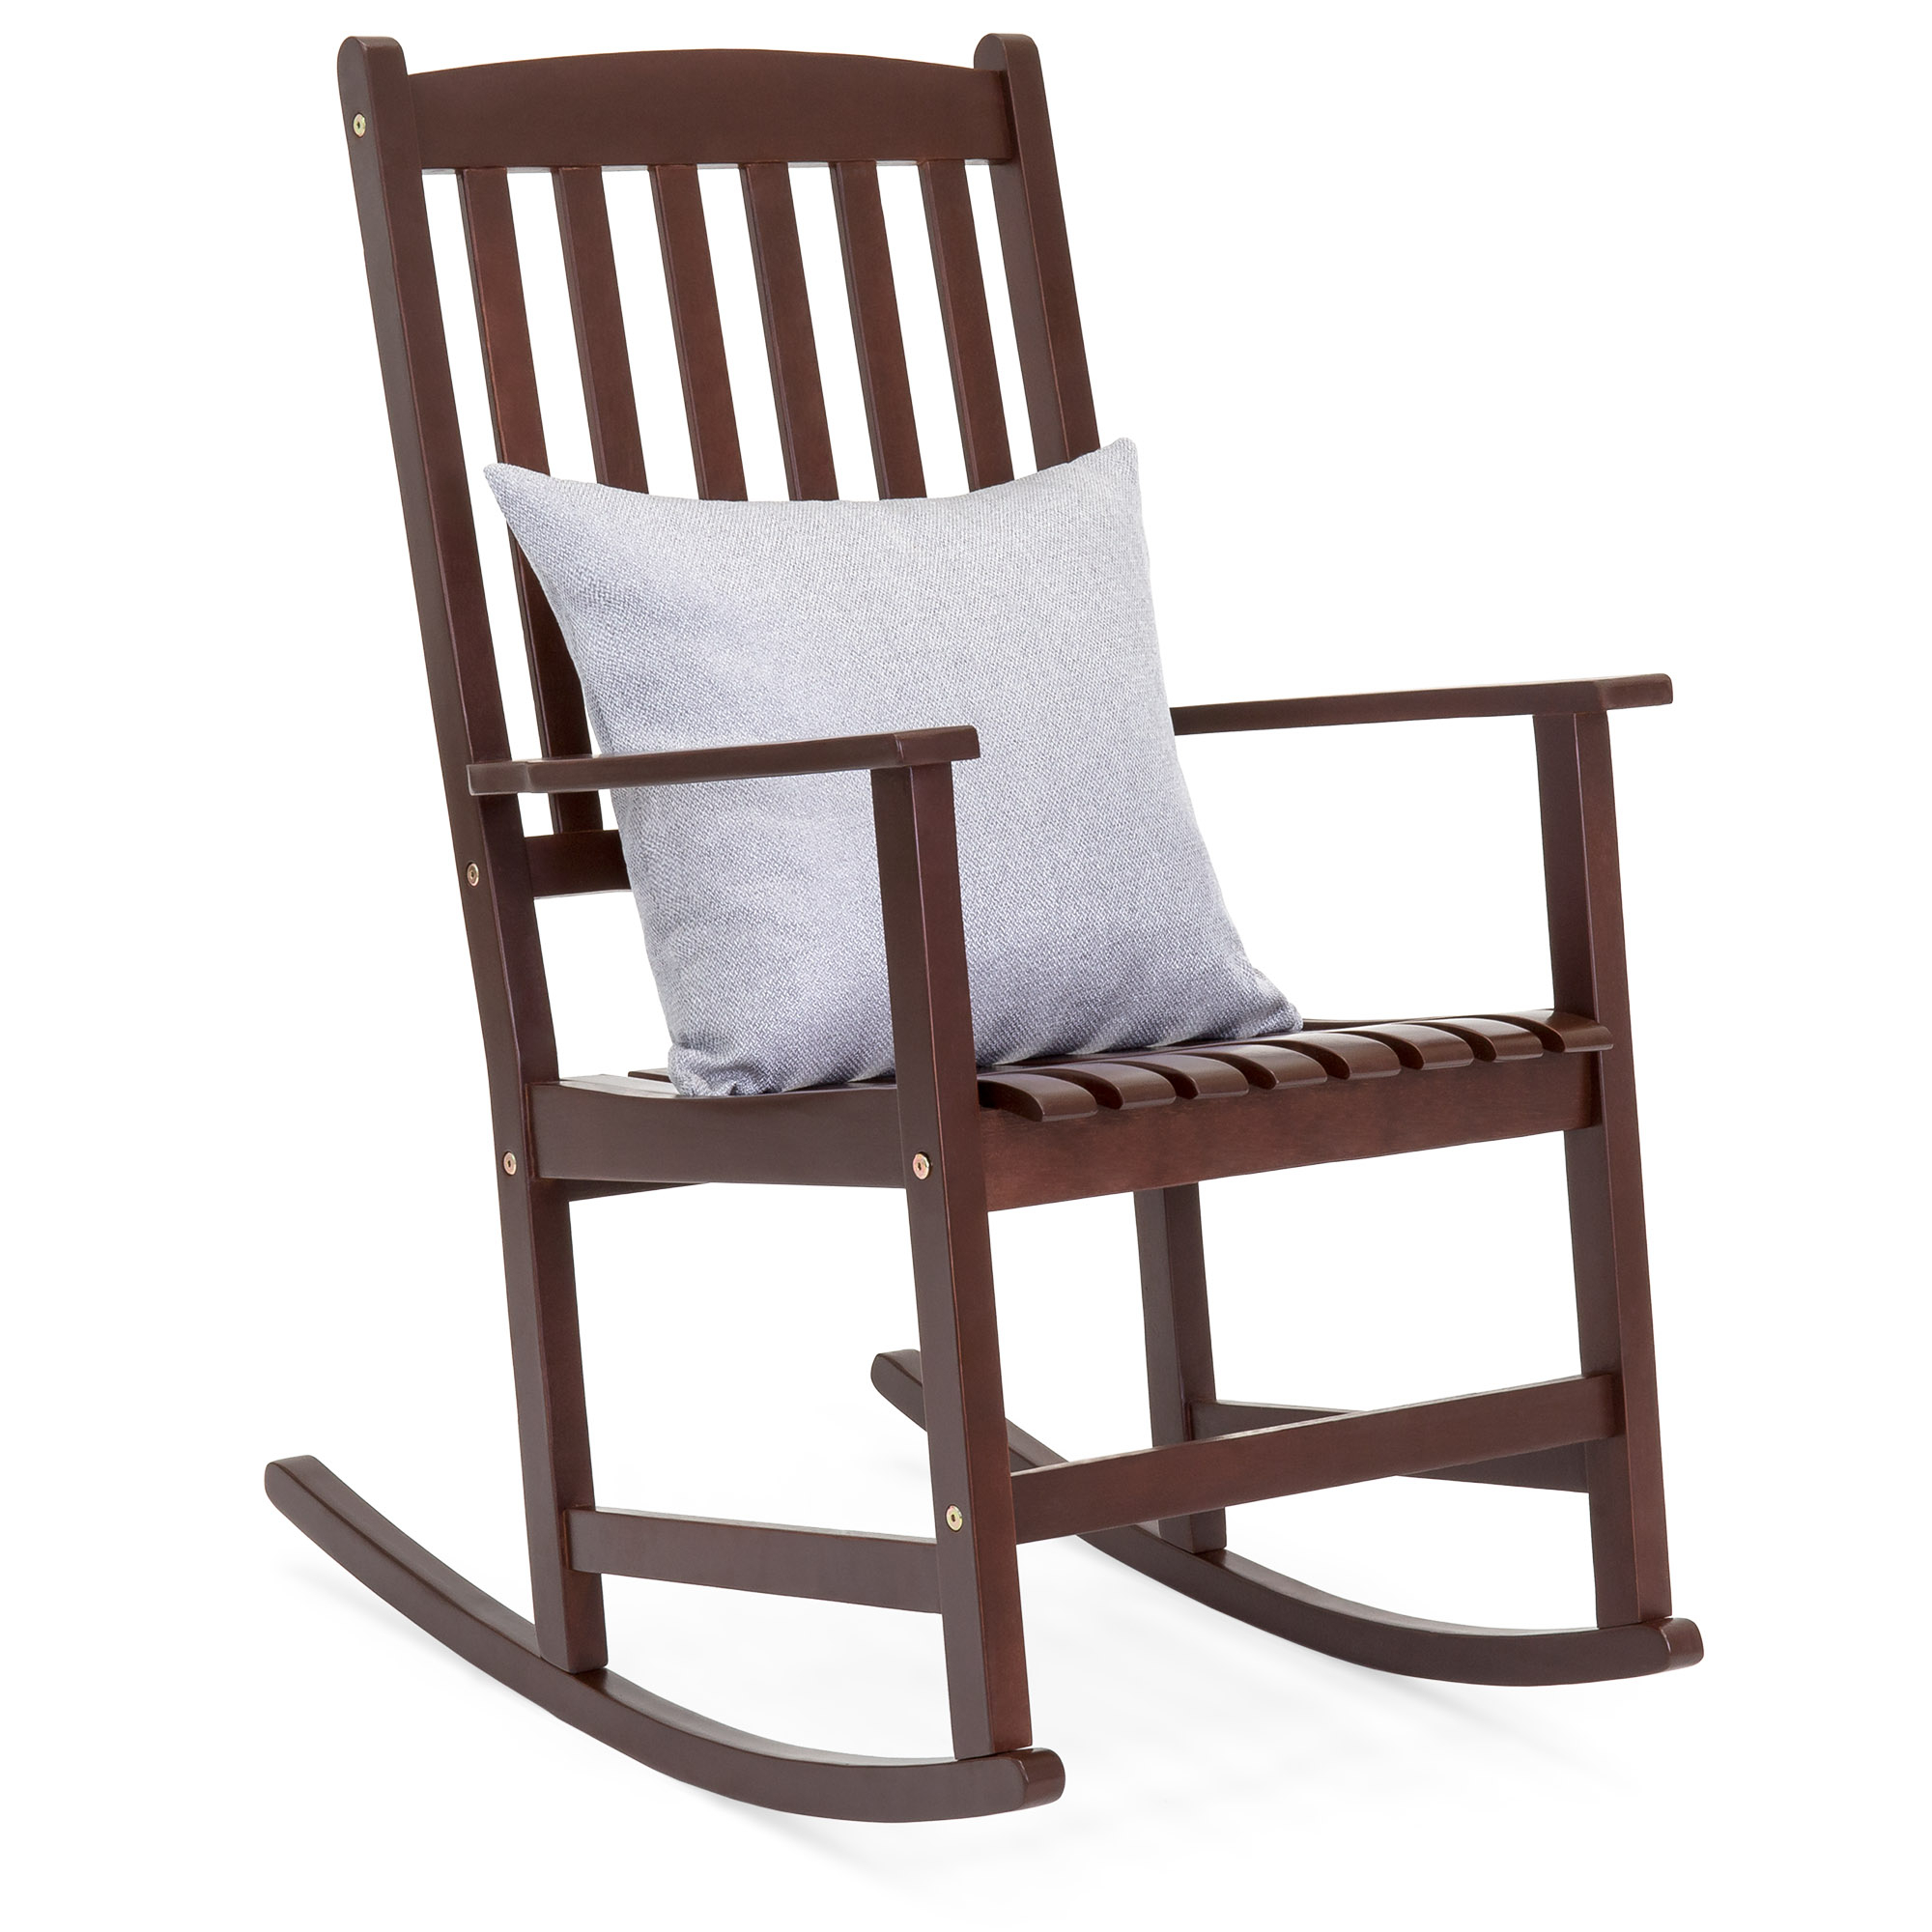 Best Choice Products Indoor Outdoor Traditional Slat Wood Rocking Chair  Furniture For Patio, Porch, Living Room – Brown With Regard To Indoor / Outdoor Porch Slat Rocking Chairs (#4 of 20)